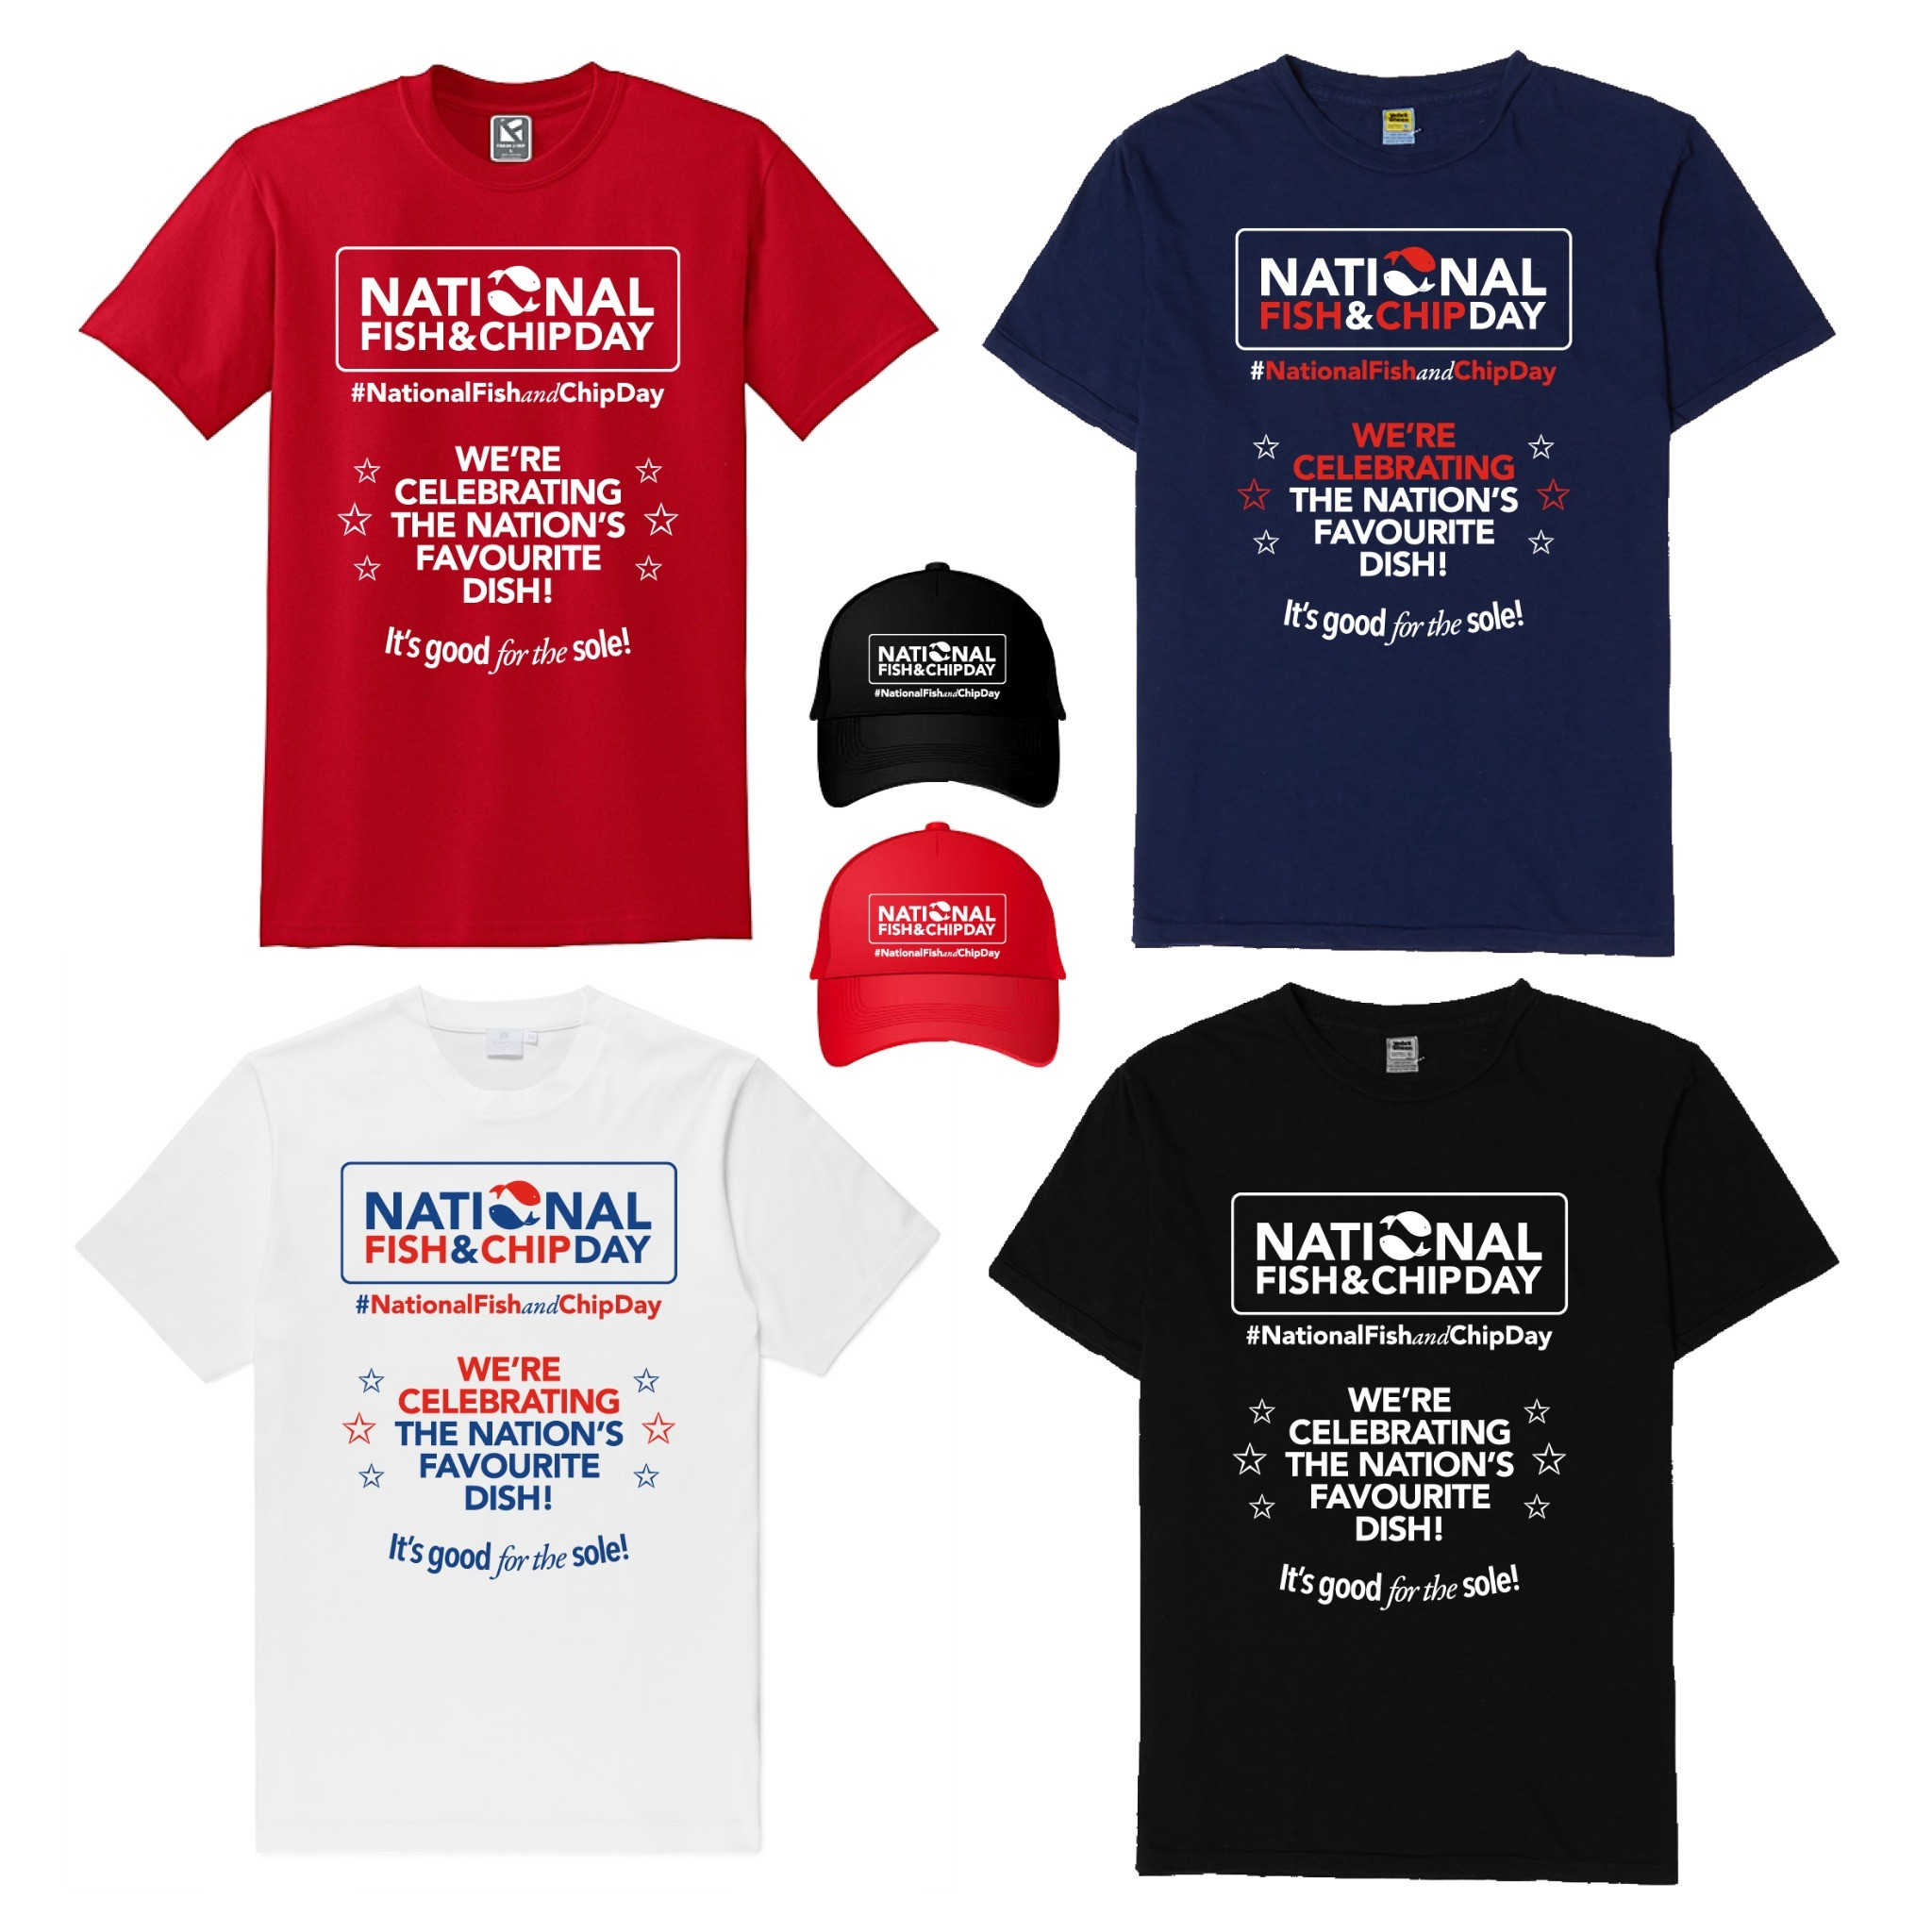 Don't miss out on our Early Bird Offer on National Fish and Chip Day Merch!